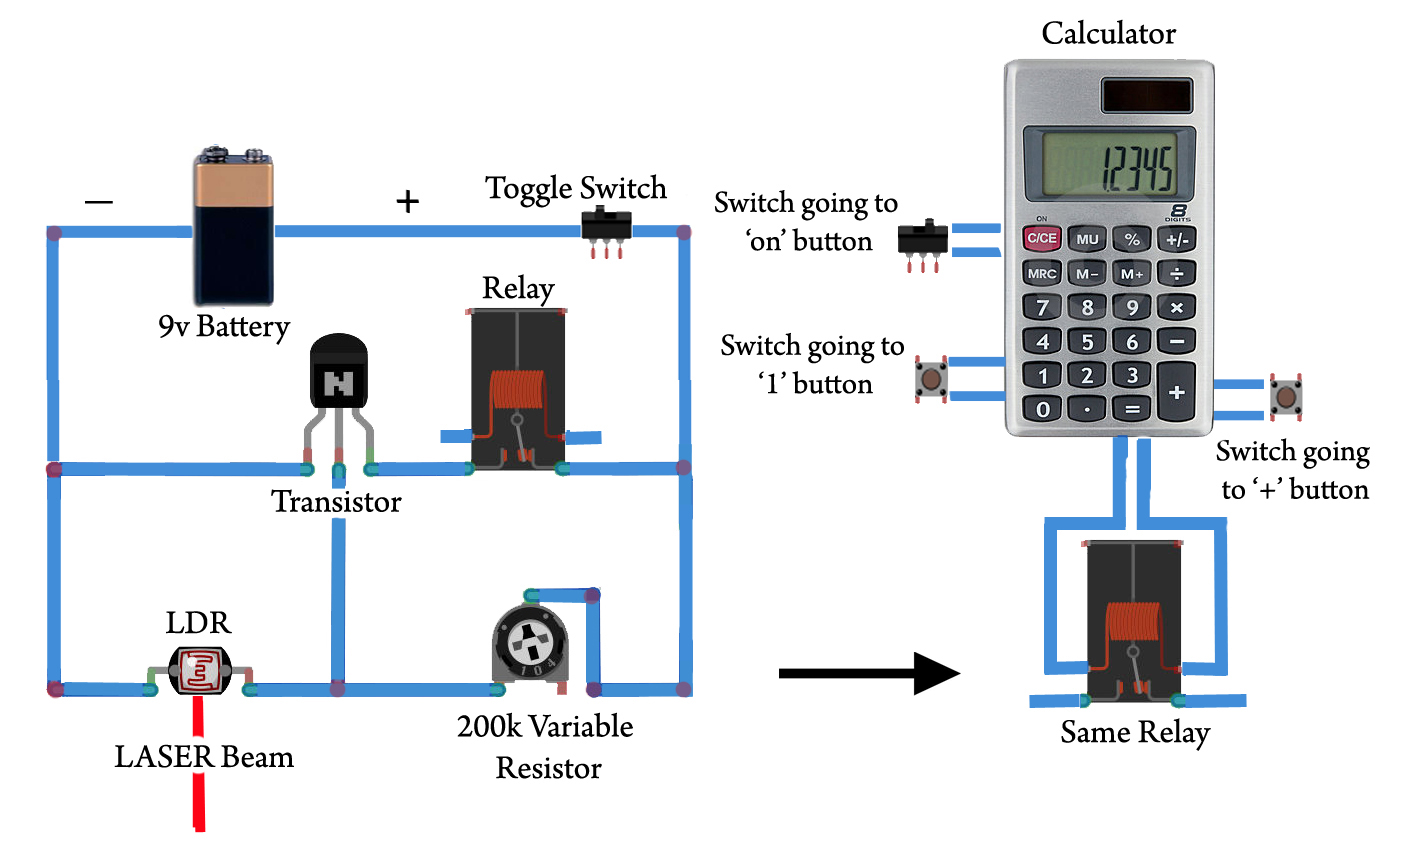 Photocell switch wiring diagram best wiring diagram image 2018 lighting contactor wiring diagram with photocell single phase fair cheapraybanclubmaster Choice Image